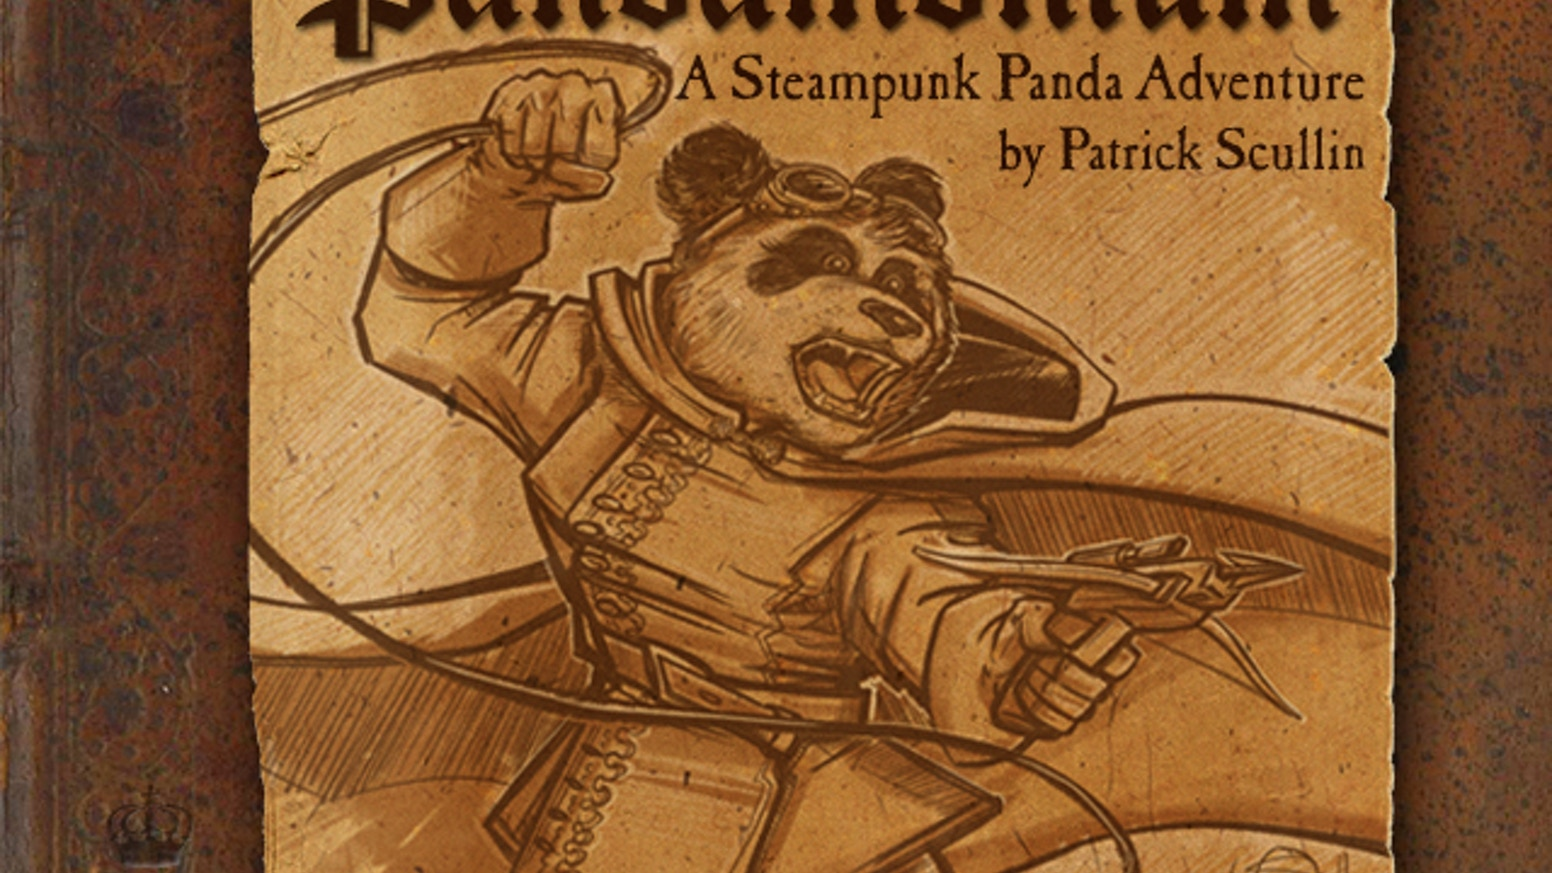 The Steampunk Panda adventure you've been waiting for. A new 100 page beautifully illustrated novel by Patrick Scullin.